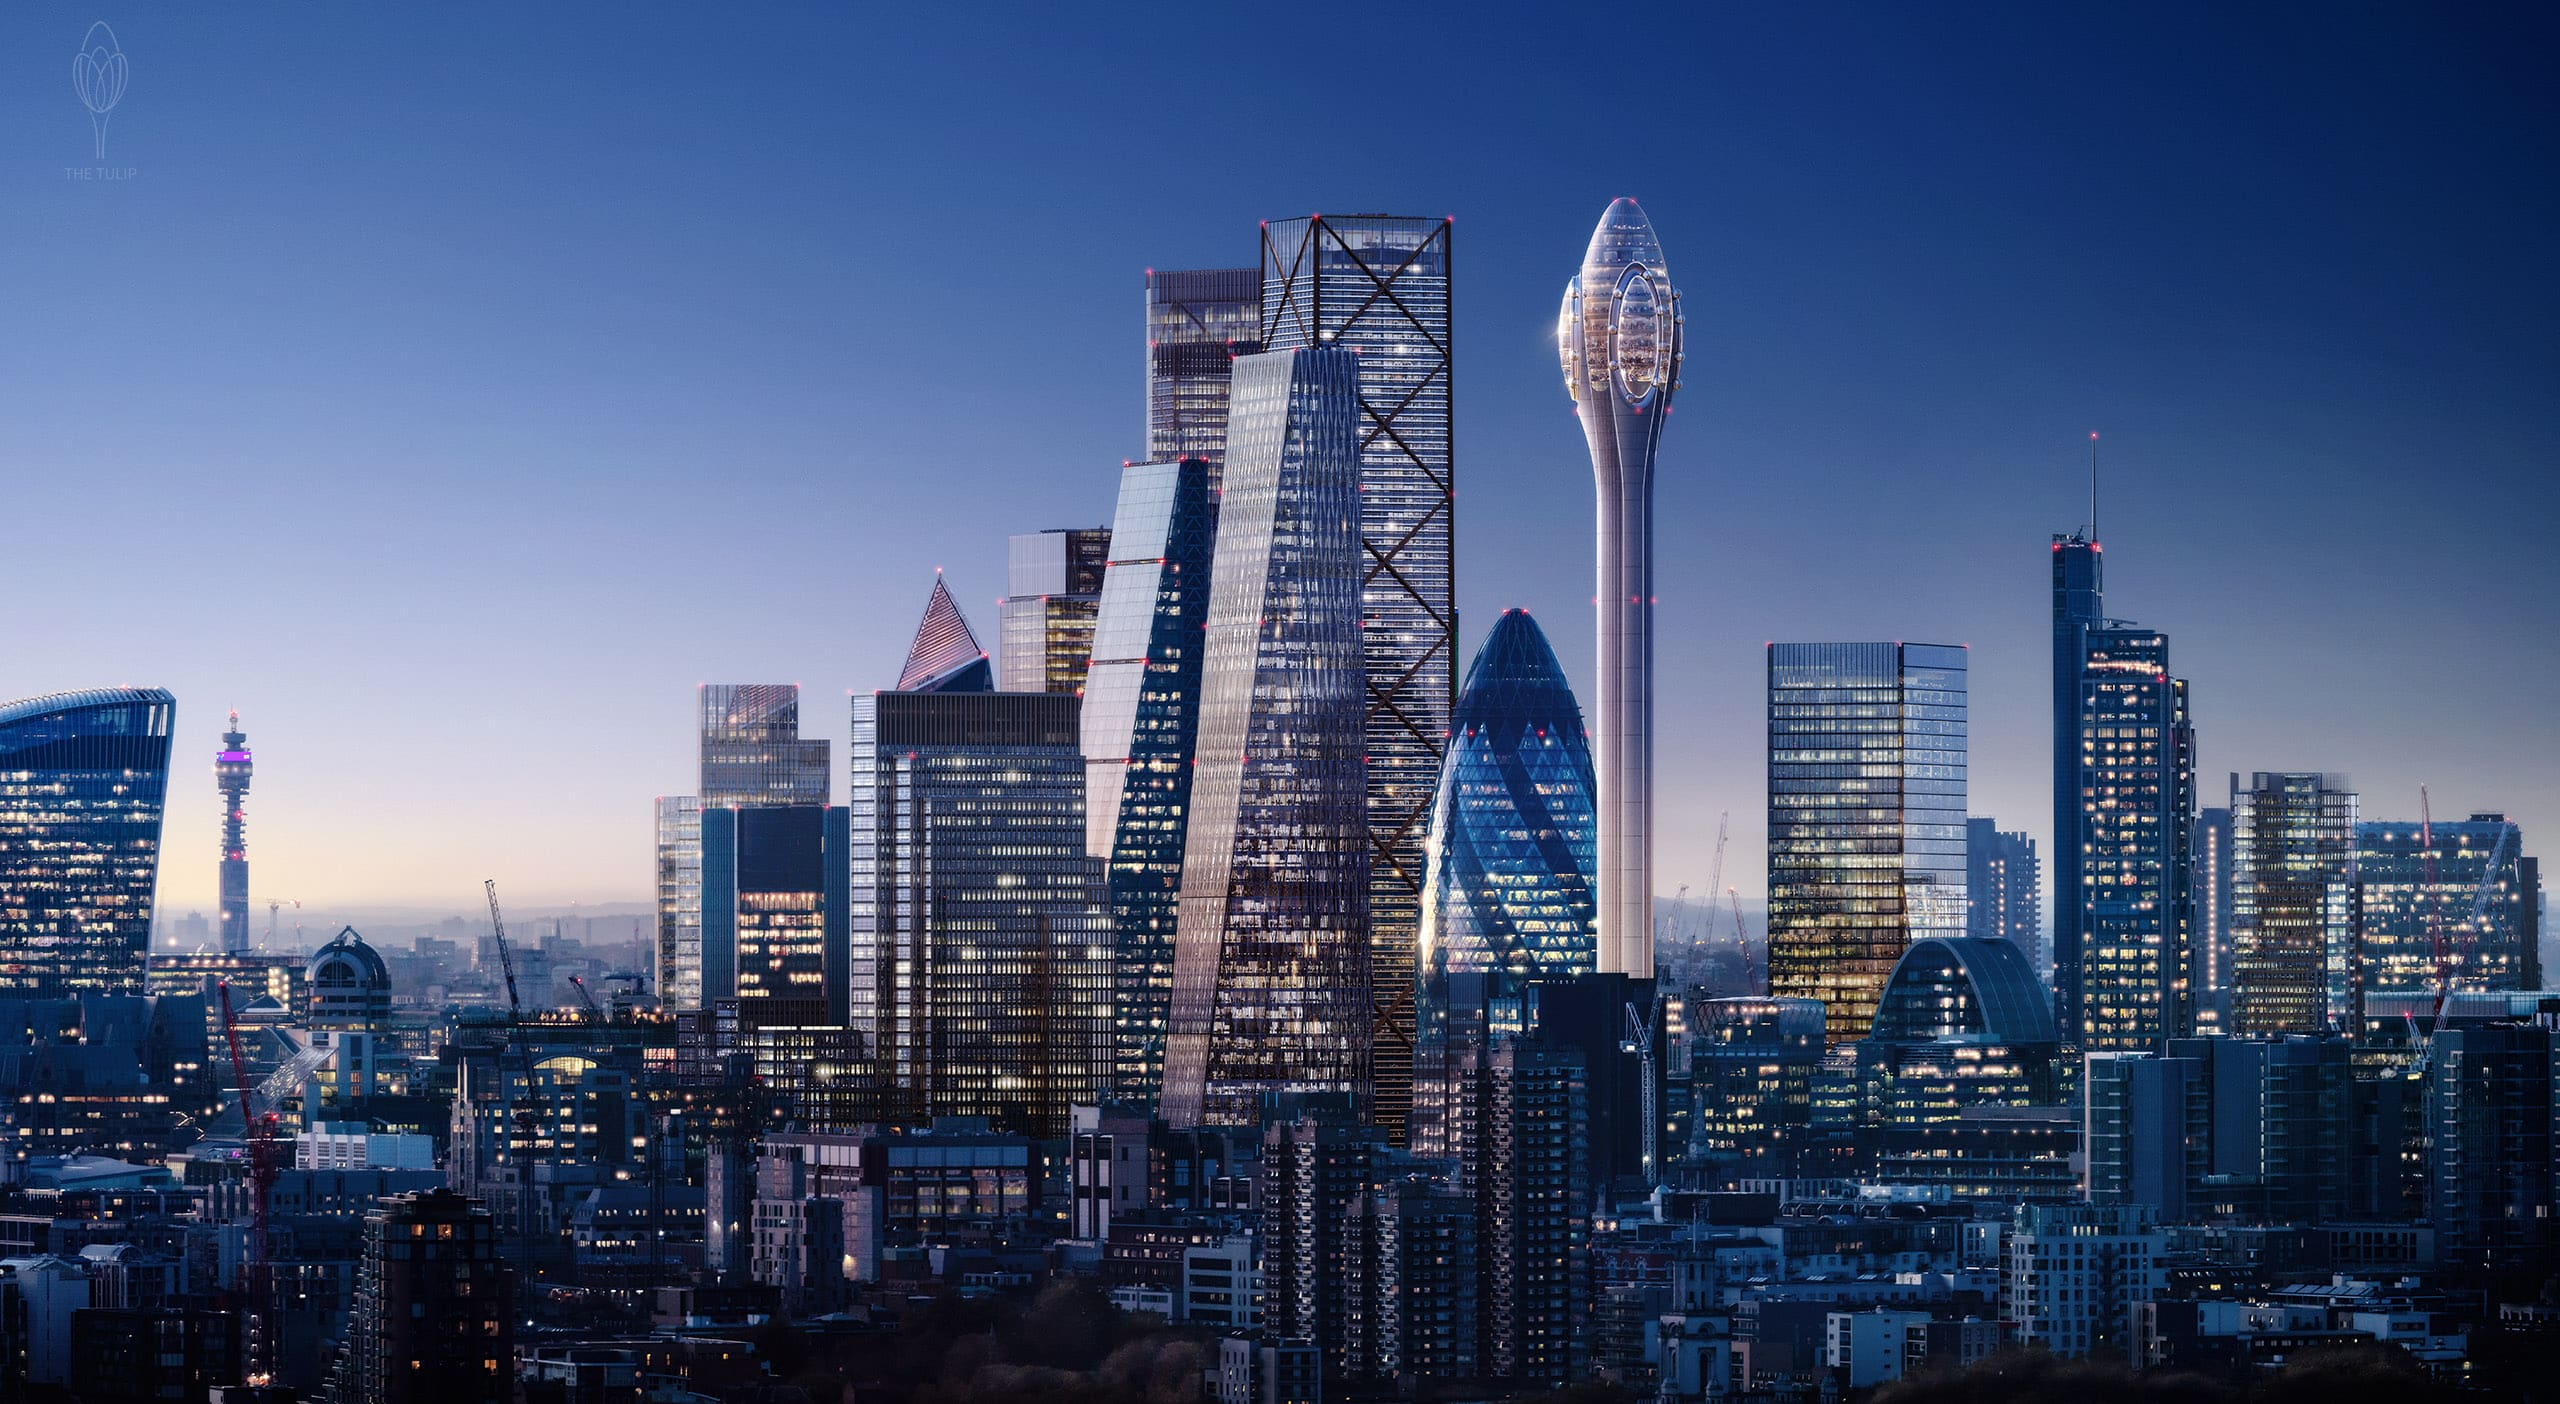 The London skyline controversy